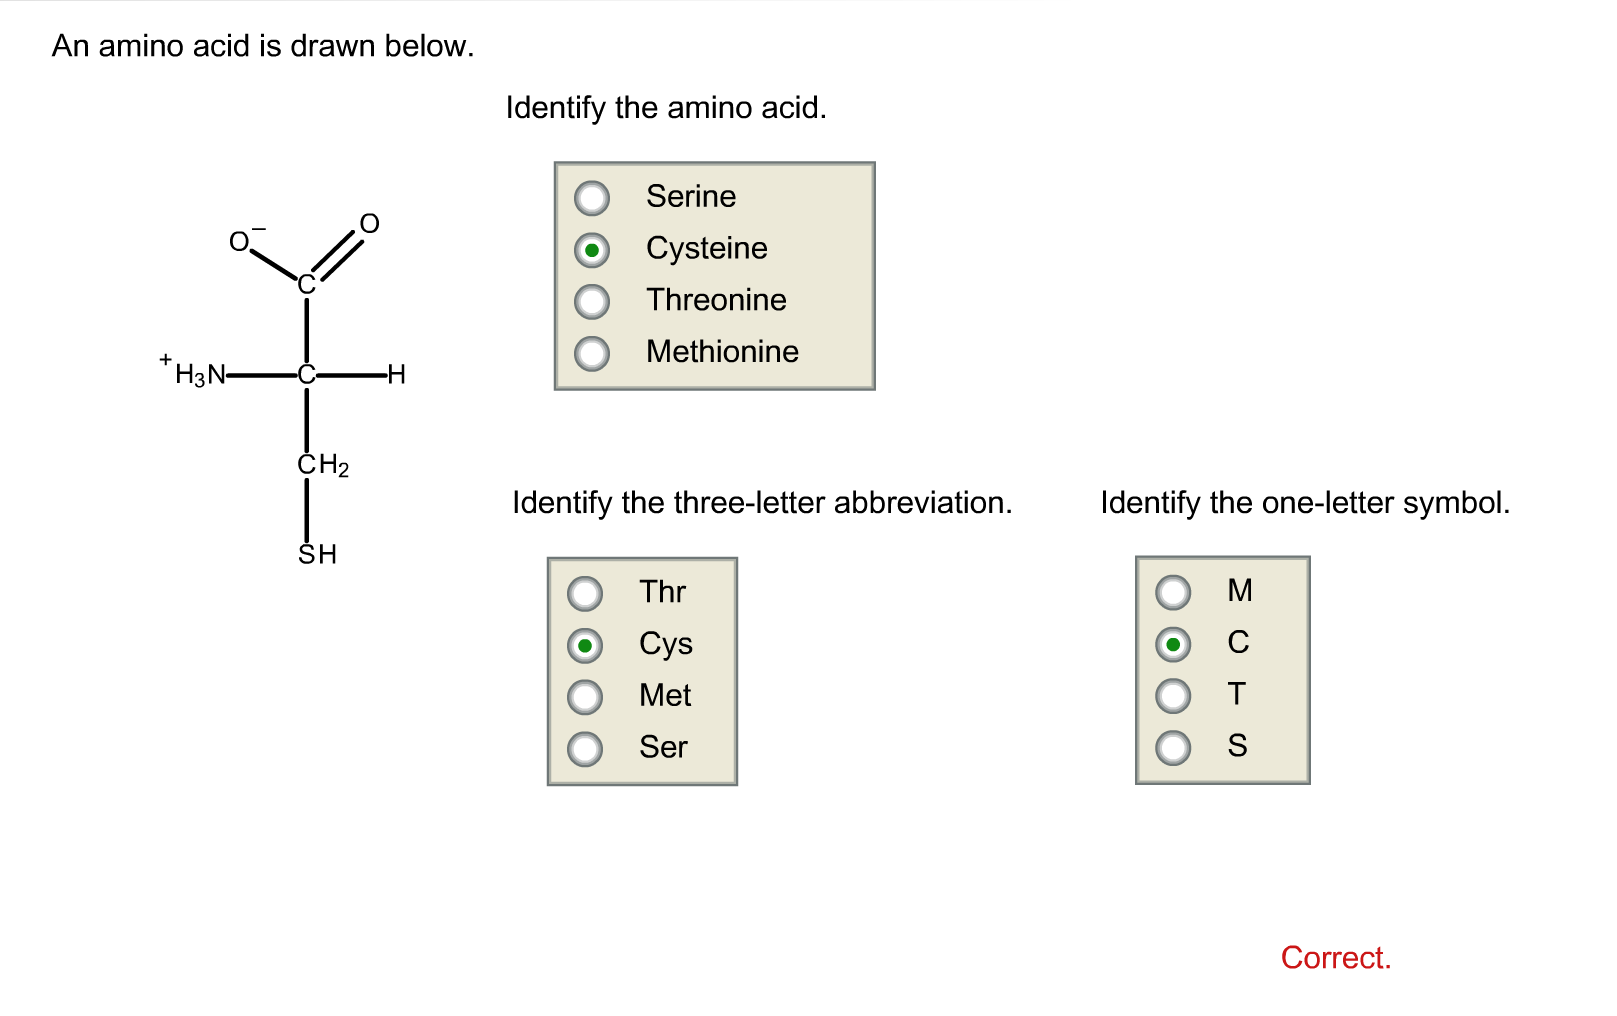 An amino acid is drawn below.